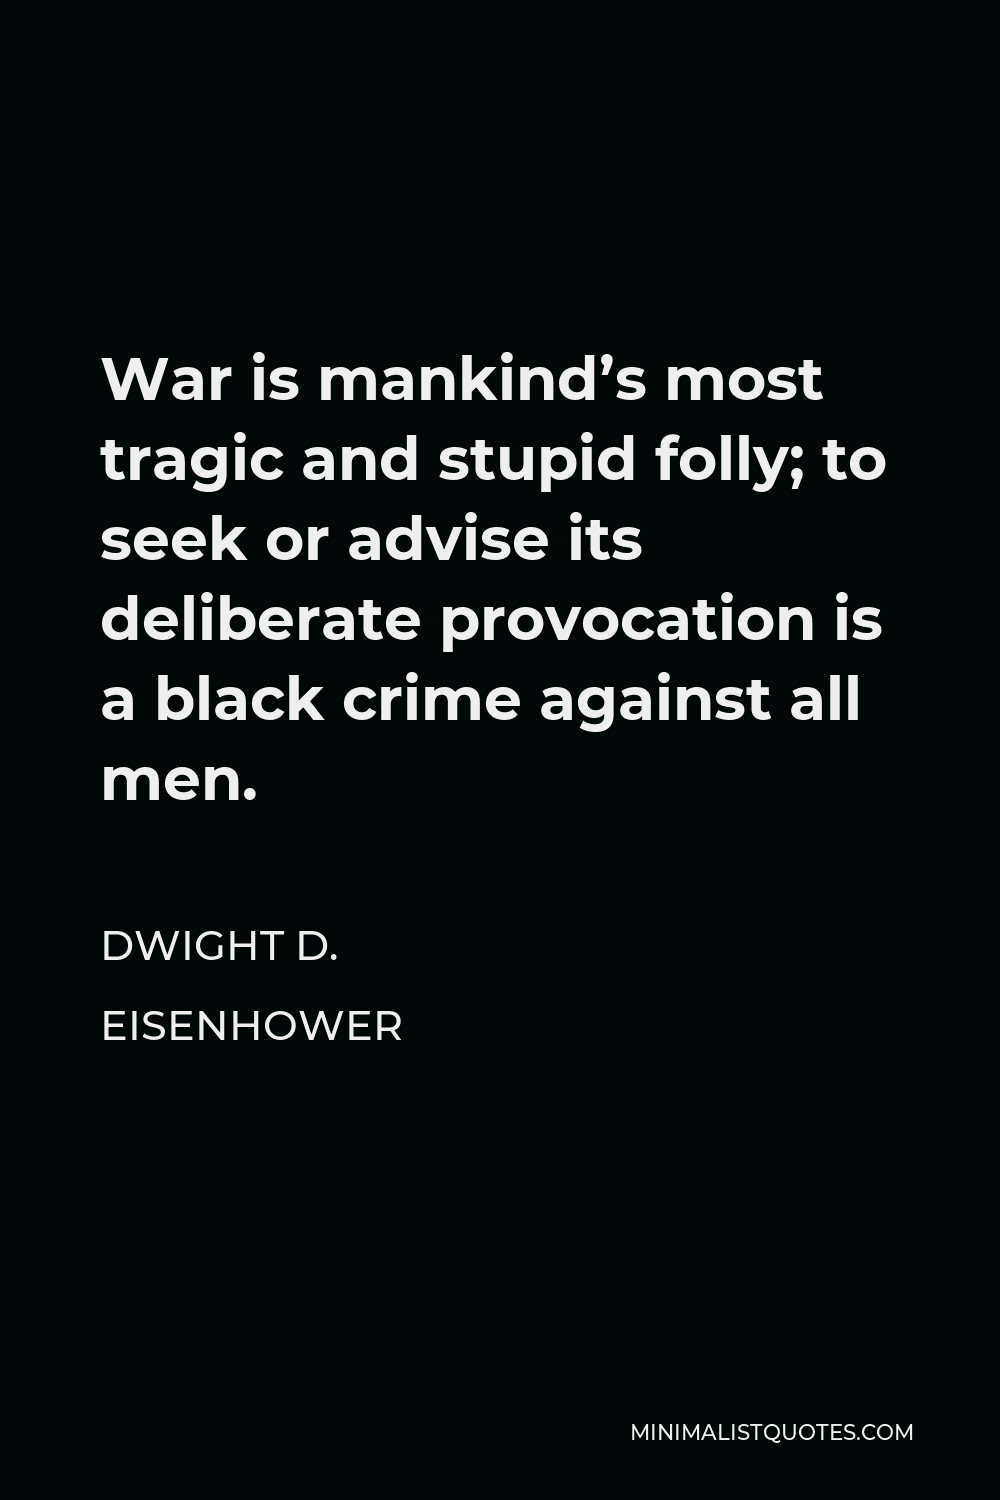 Dwight D. Eisenhower Quote - War is mankind's most tragic and stupid folly; to seek or advise its deliberate provocation is a black crime against all men.